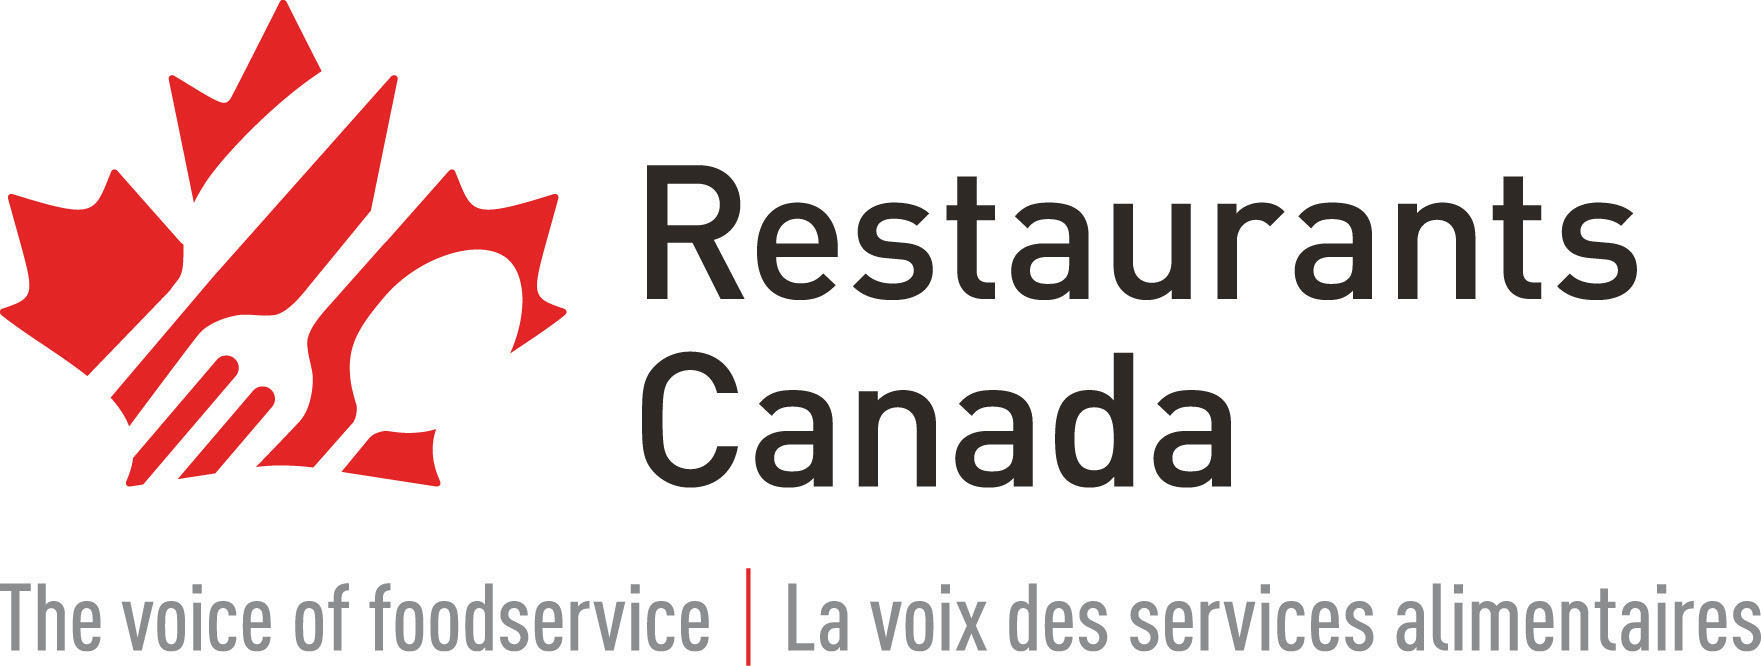 COVID-19 has cost Manitoba's foodservice sector 28,000 jobs since March 1